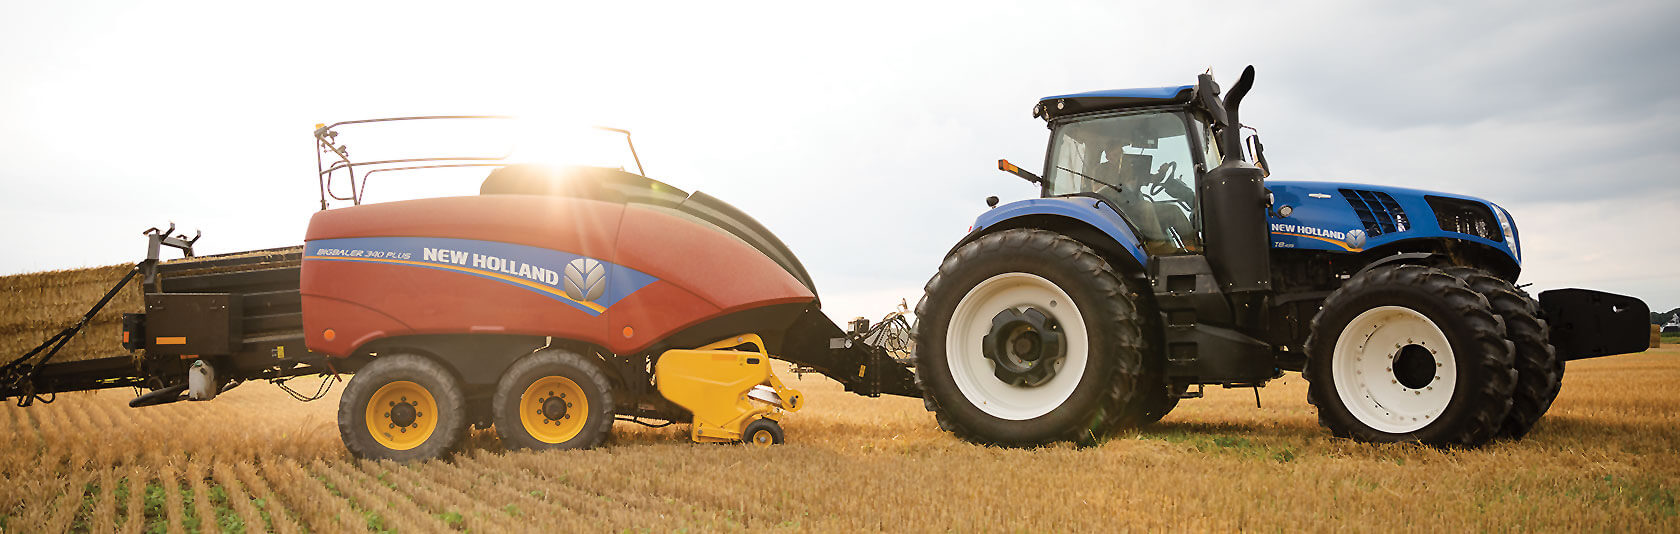 New Holland Hay Tools Specials